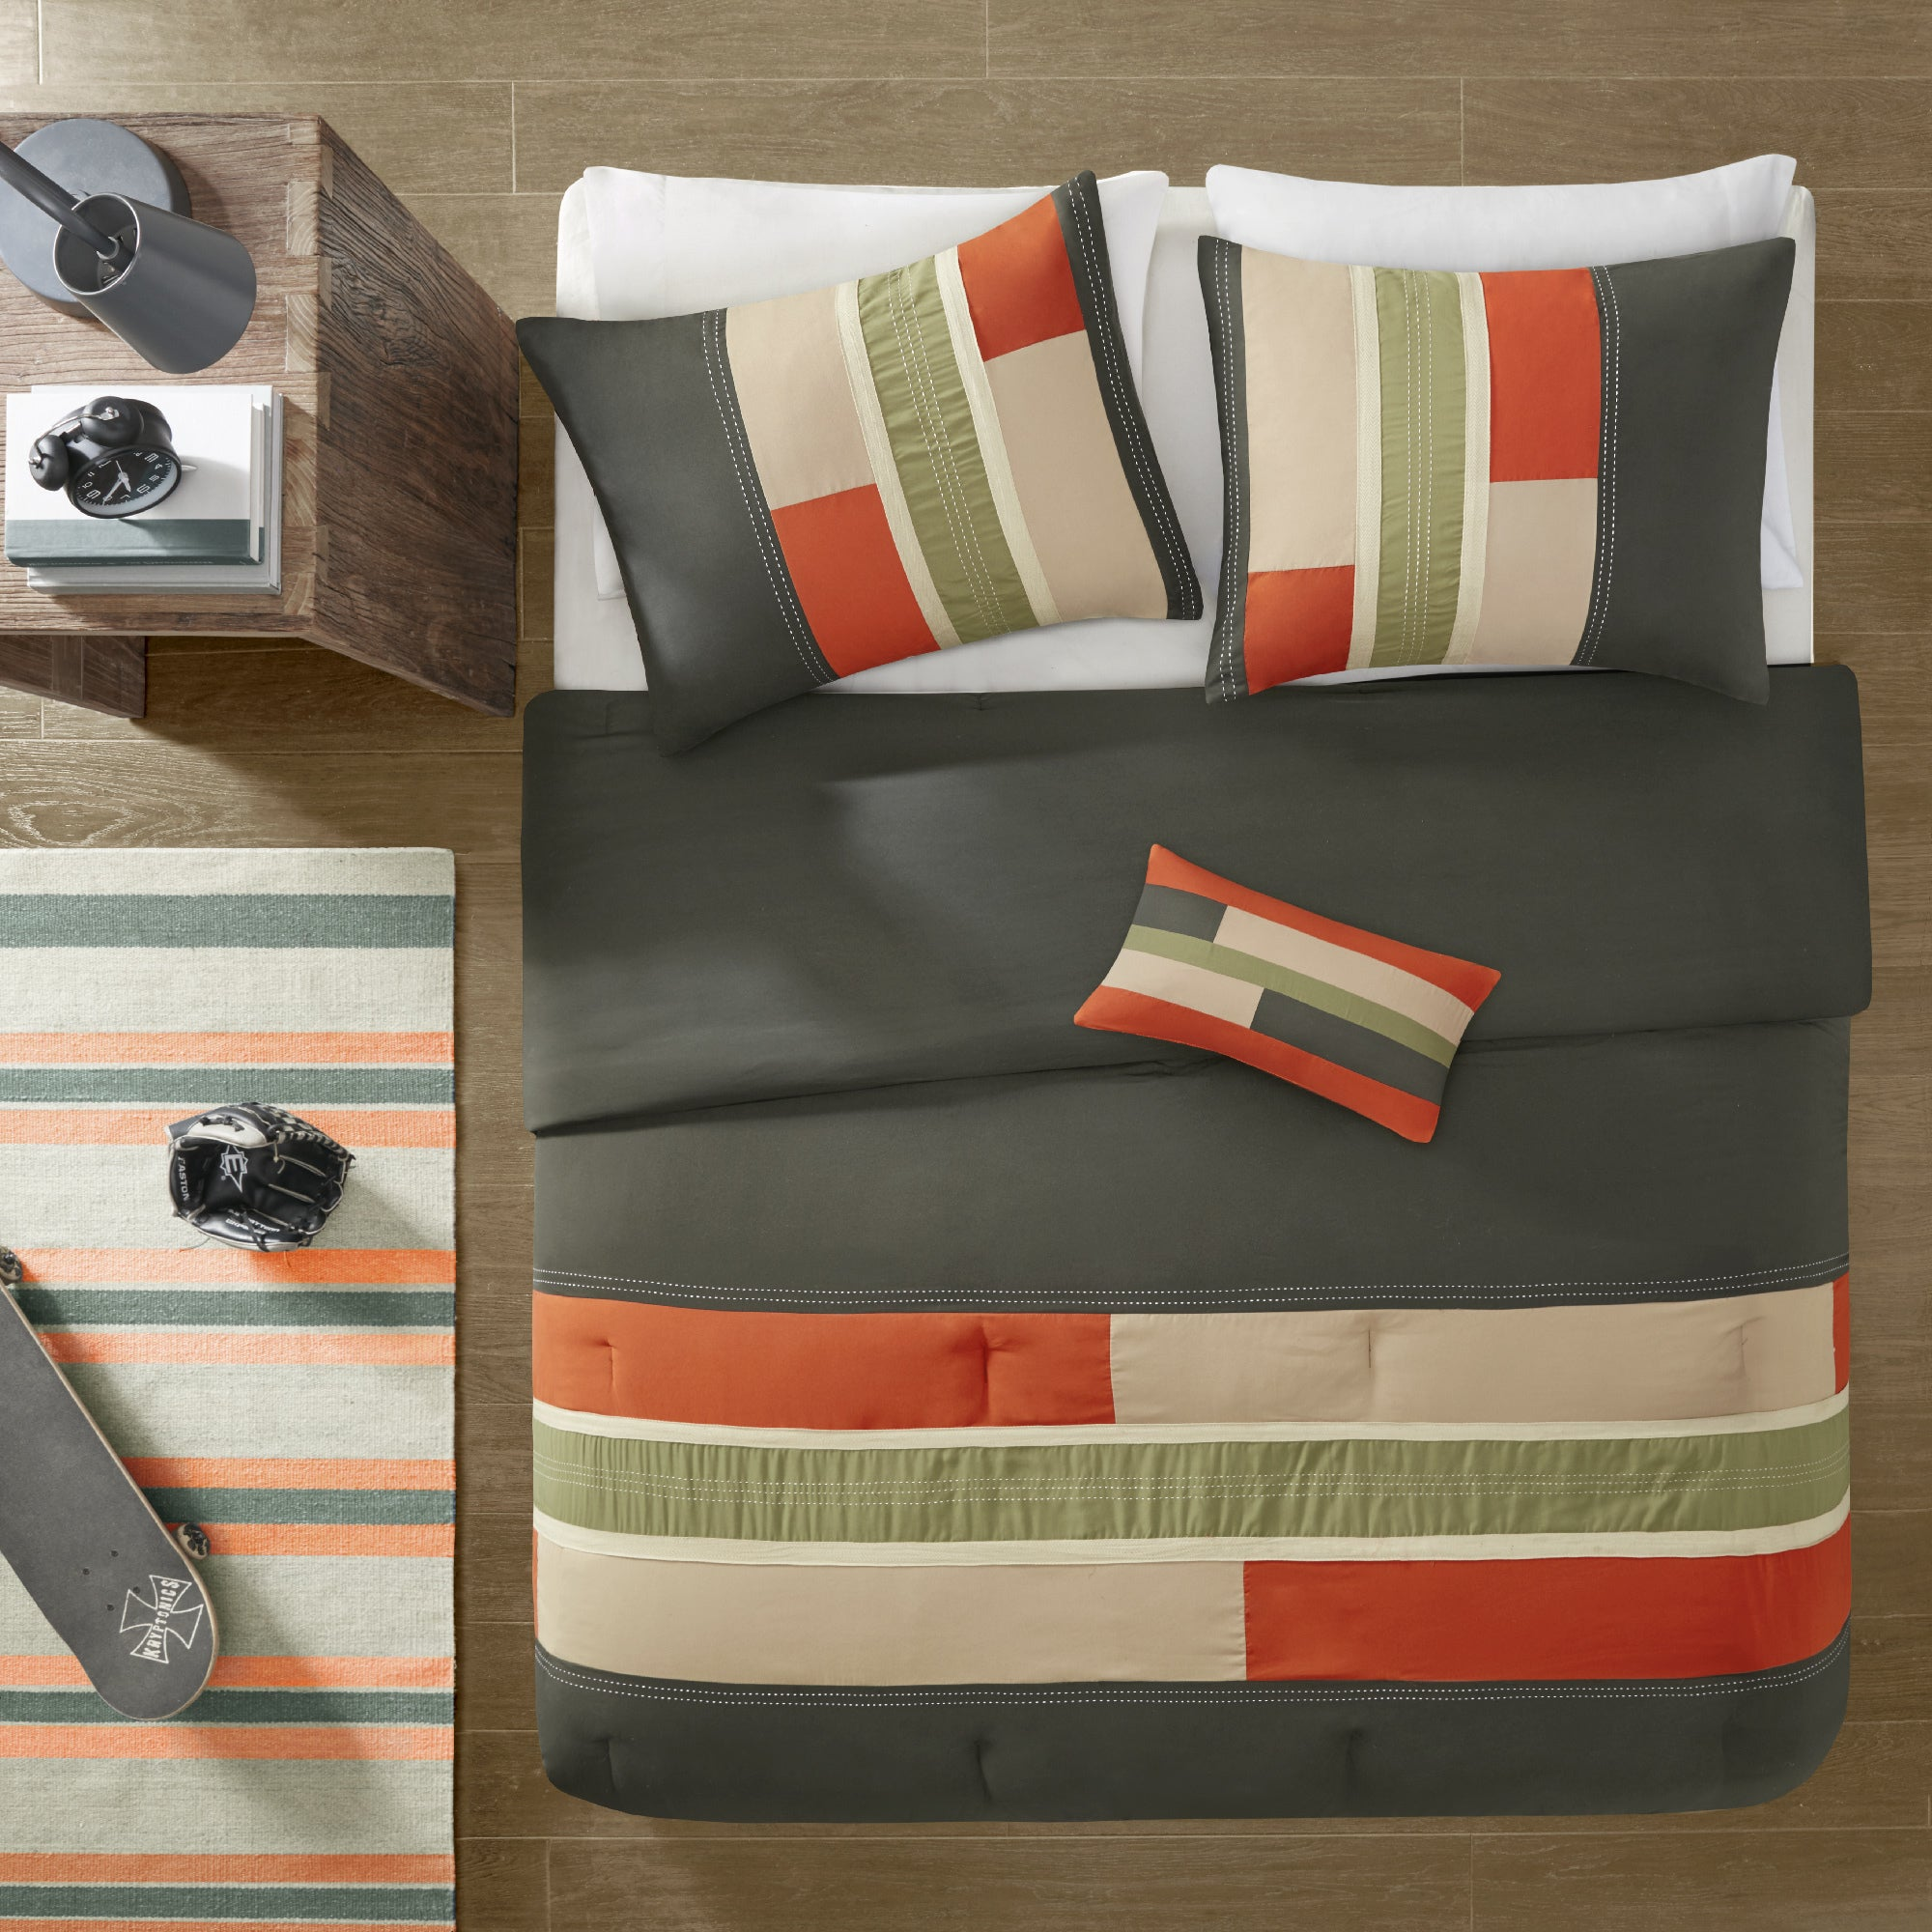 marvelous and of light comforter trend uncategorized orange grey ideas xfile bedding set amazing gray pink